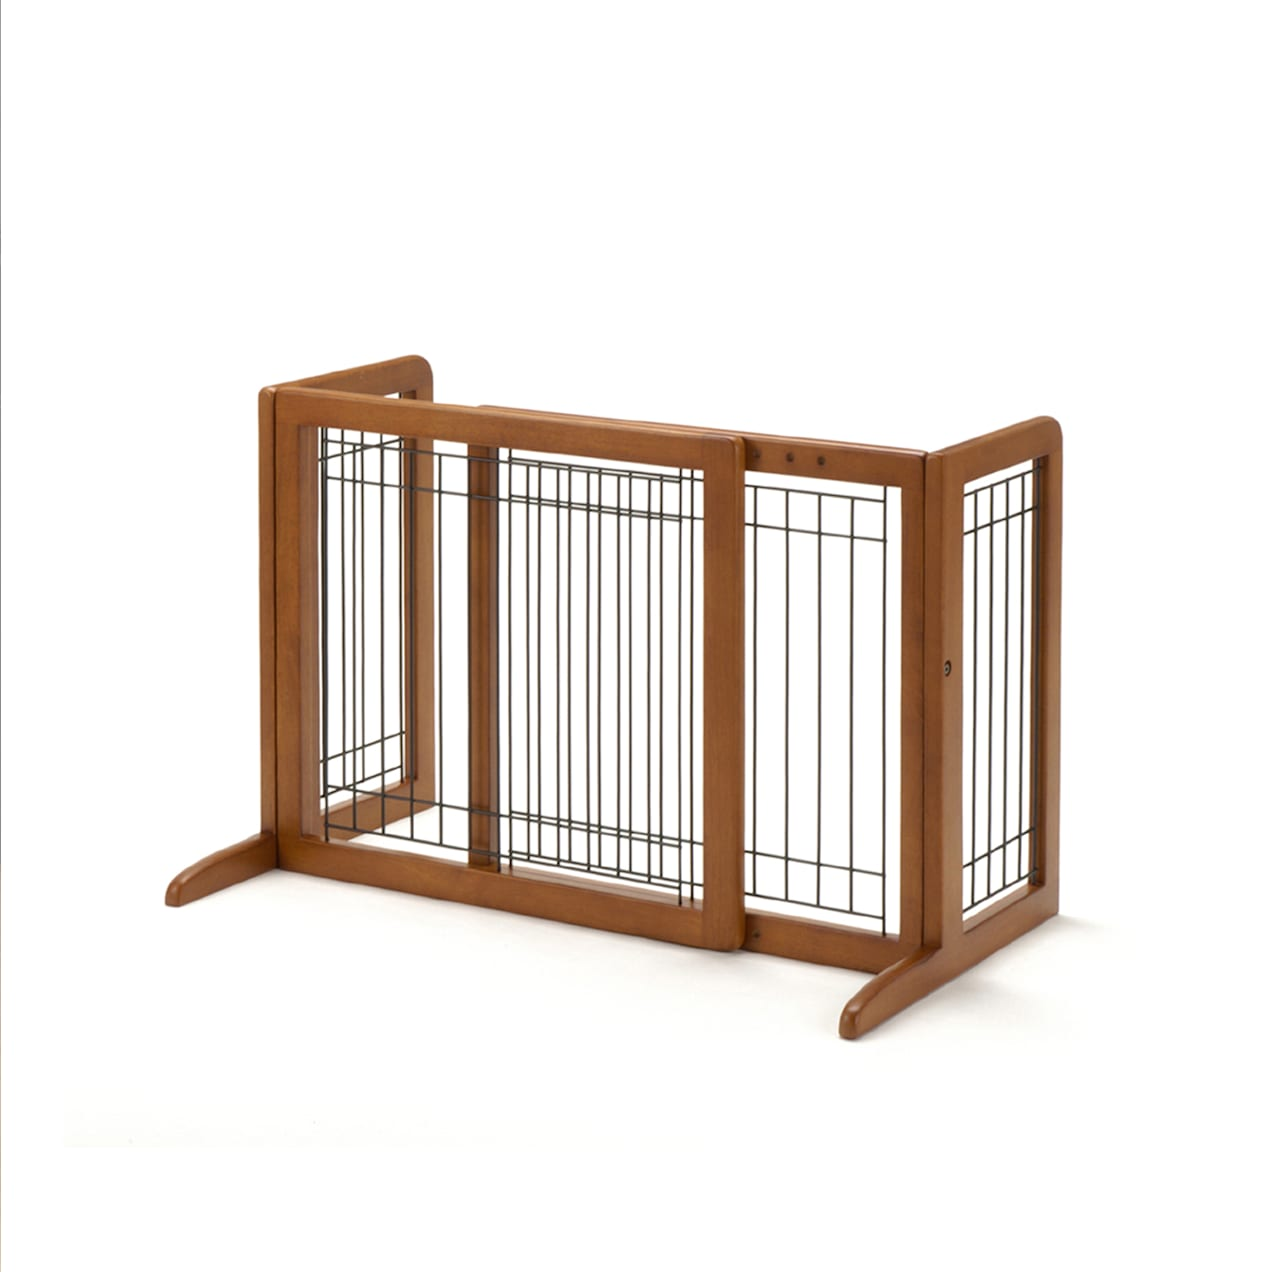 Richell Freestanding Step-Over Pet Gate on a white background